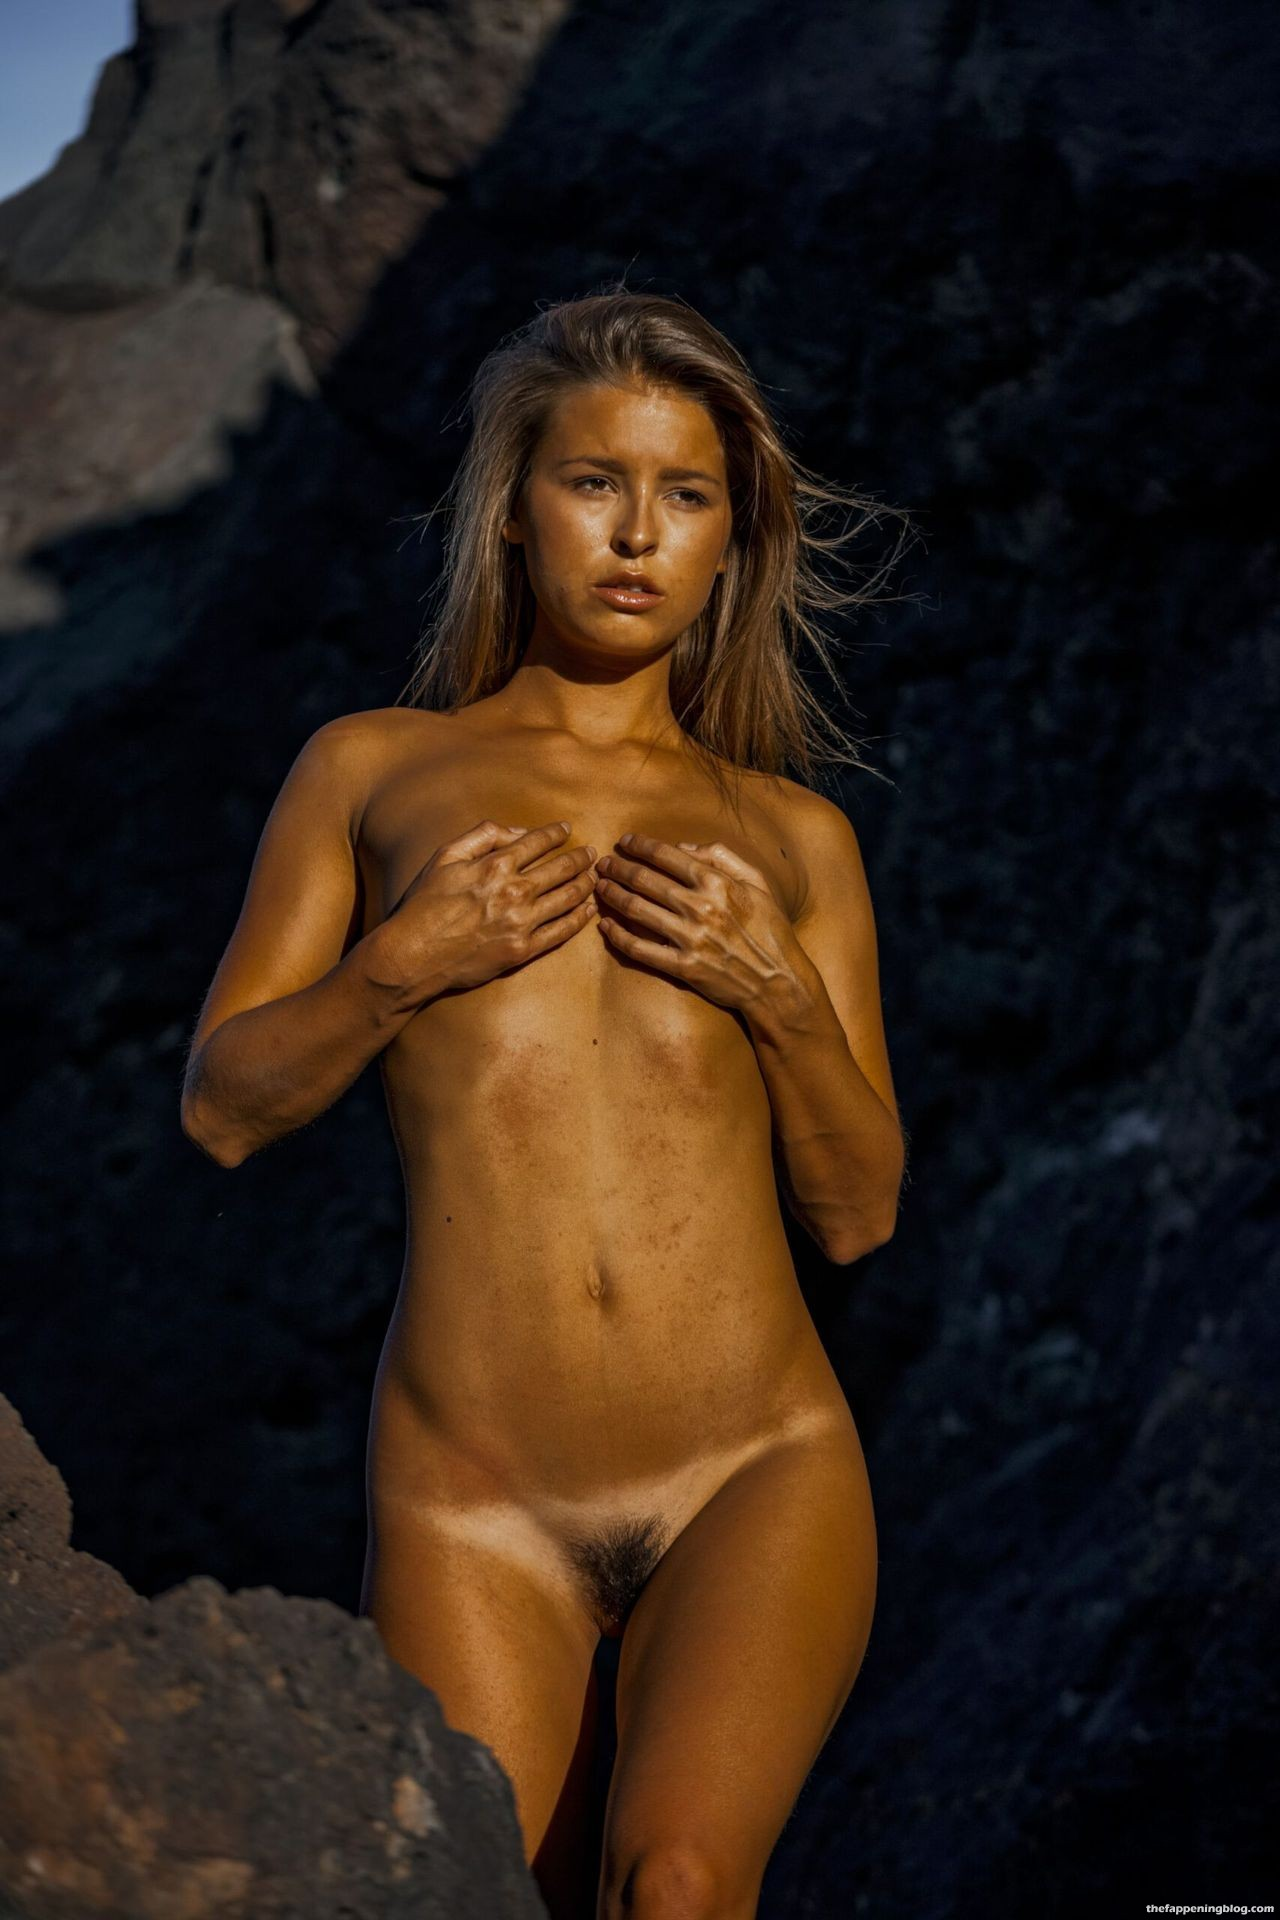 Marisa-Papen-Stunning-Naked-Body-38-scaled1-thefappeningblog.com_.jpg